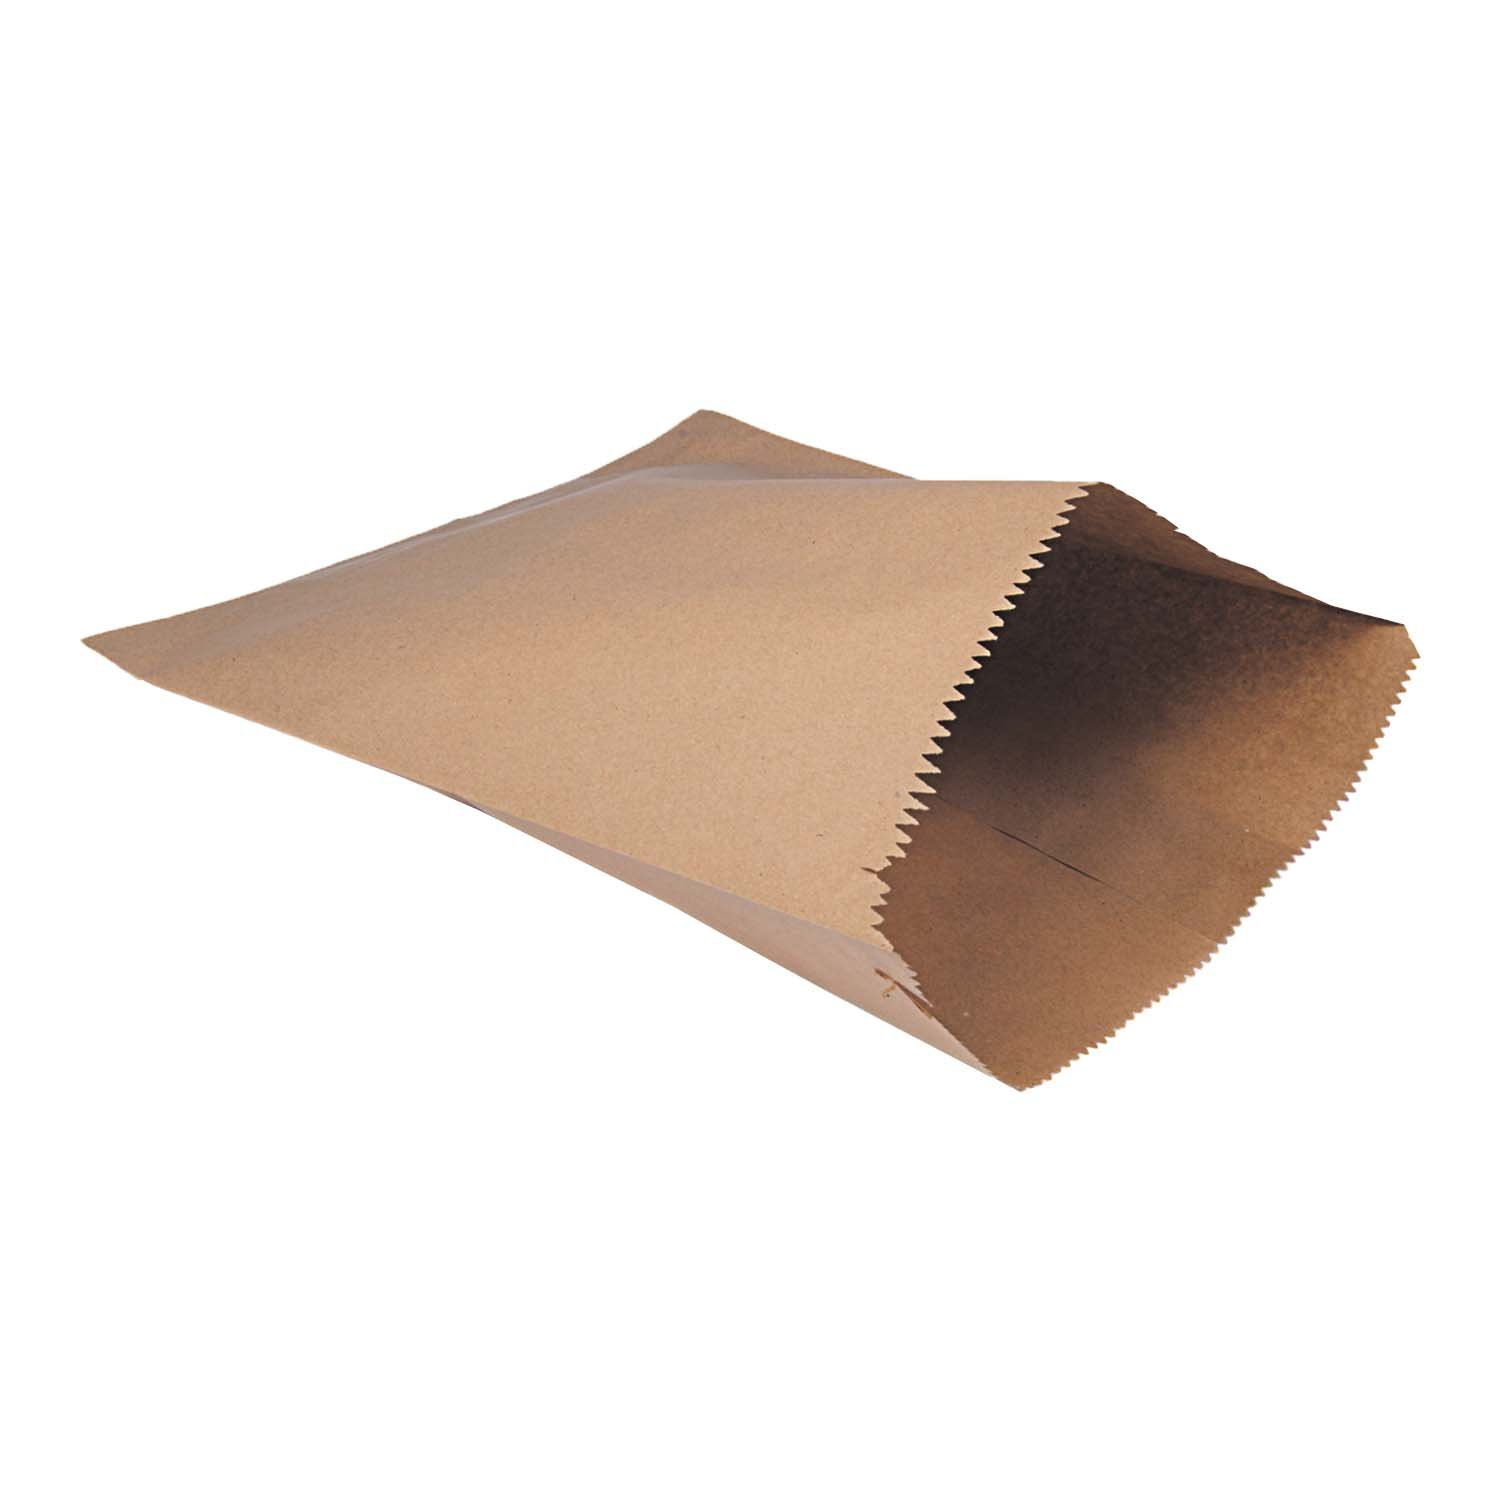 Deli Supplies 500 x Kraft Brown Paper Bags 12' x 12.5' Fruit Sweets Gifts Strung Bag